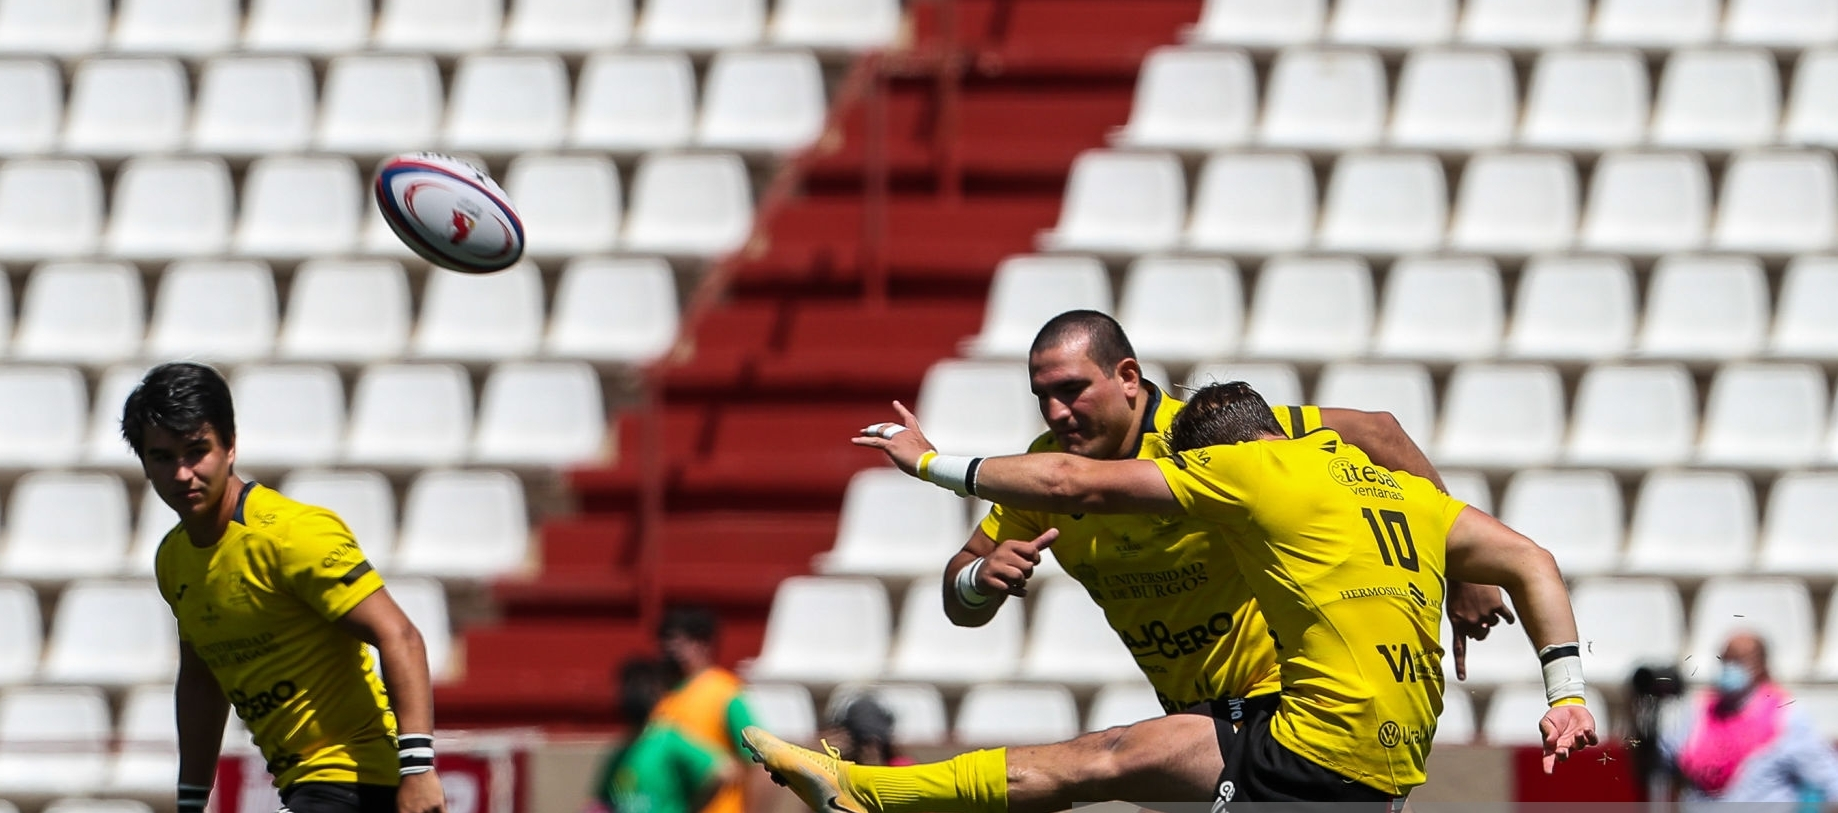 ALBACETE, SPAIN - JUNE 06: Andrew Derrick Grey Norton of Universidad de Burgos in action during the spanish cup, Copa del Rey, final rugby match played between the University of Burgos - Bajo Cero and Lexus Alcobendas Rugby at the Carlos Belmonte stadium on June 6, 2021, in Albacete, Spain. (Photo by Ivan Terron / Europa Press Sports via Getty Images)